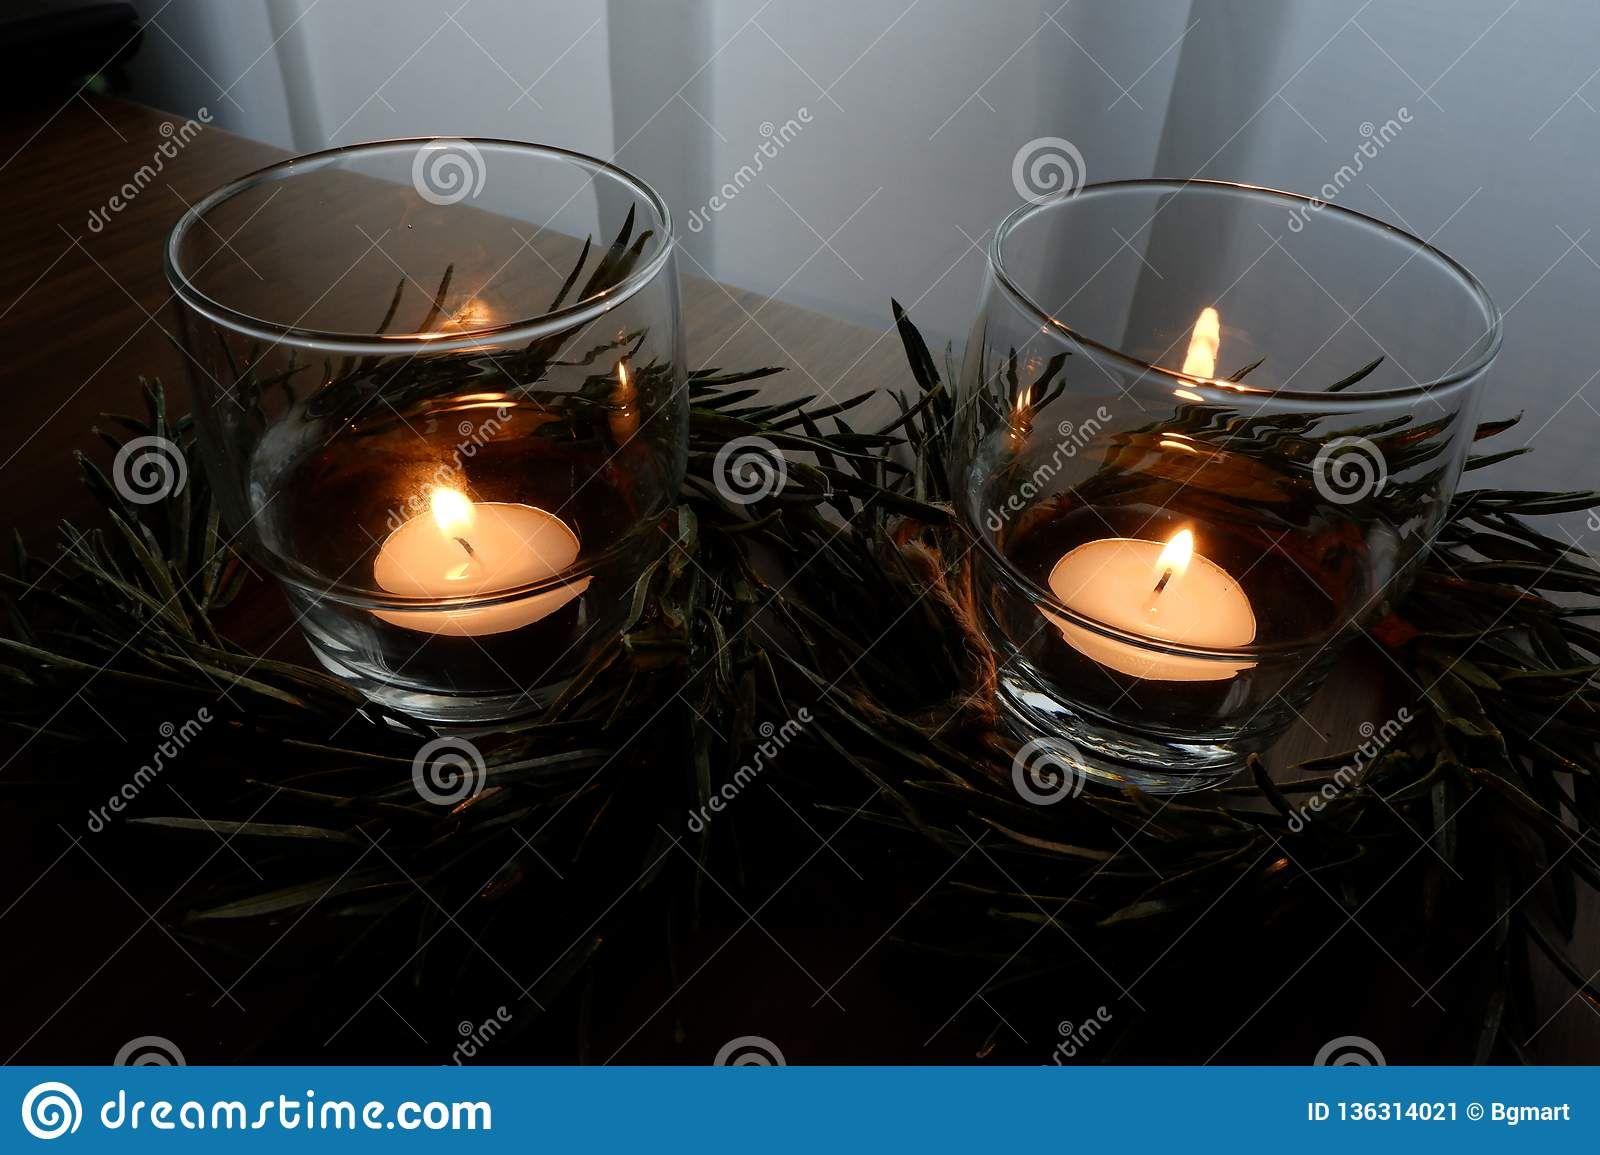 Candles for a warm illumination